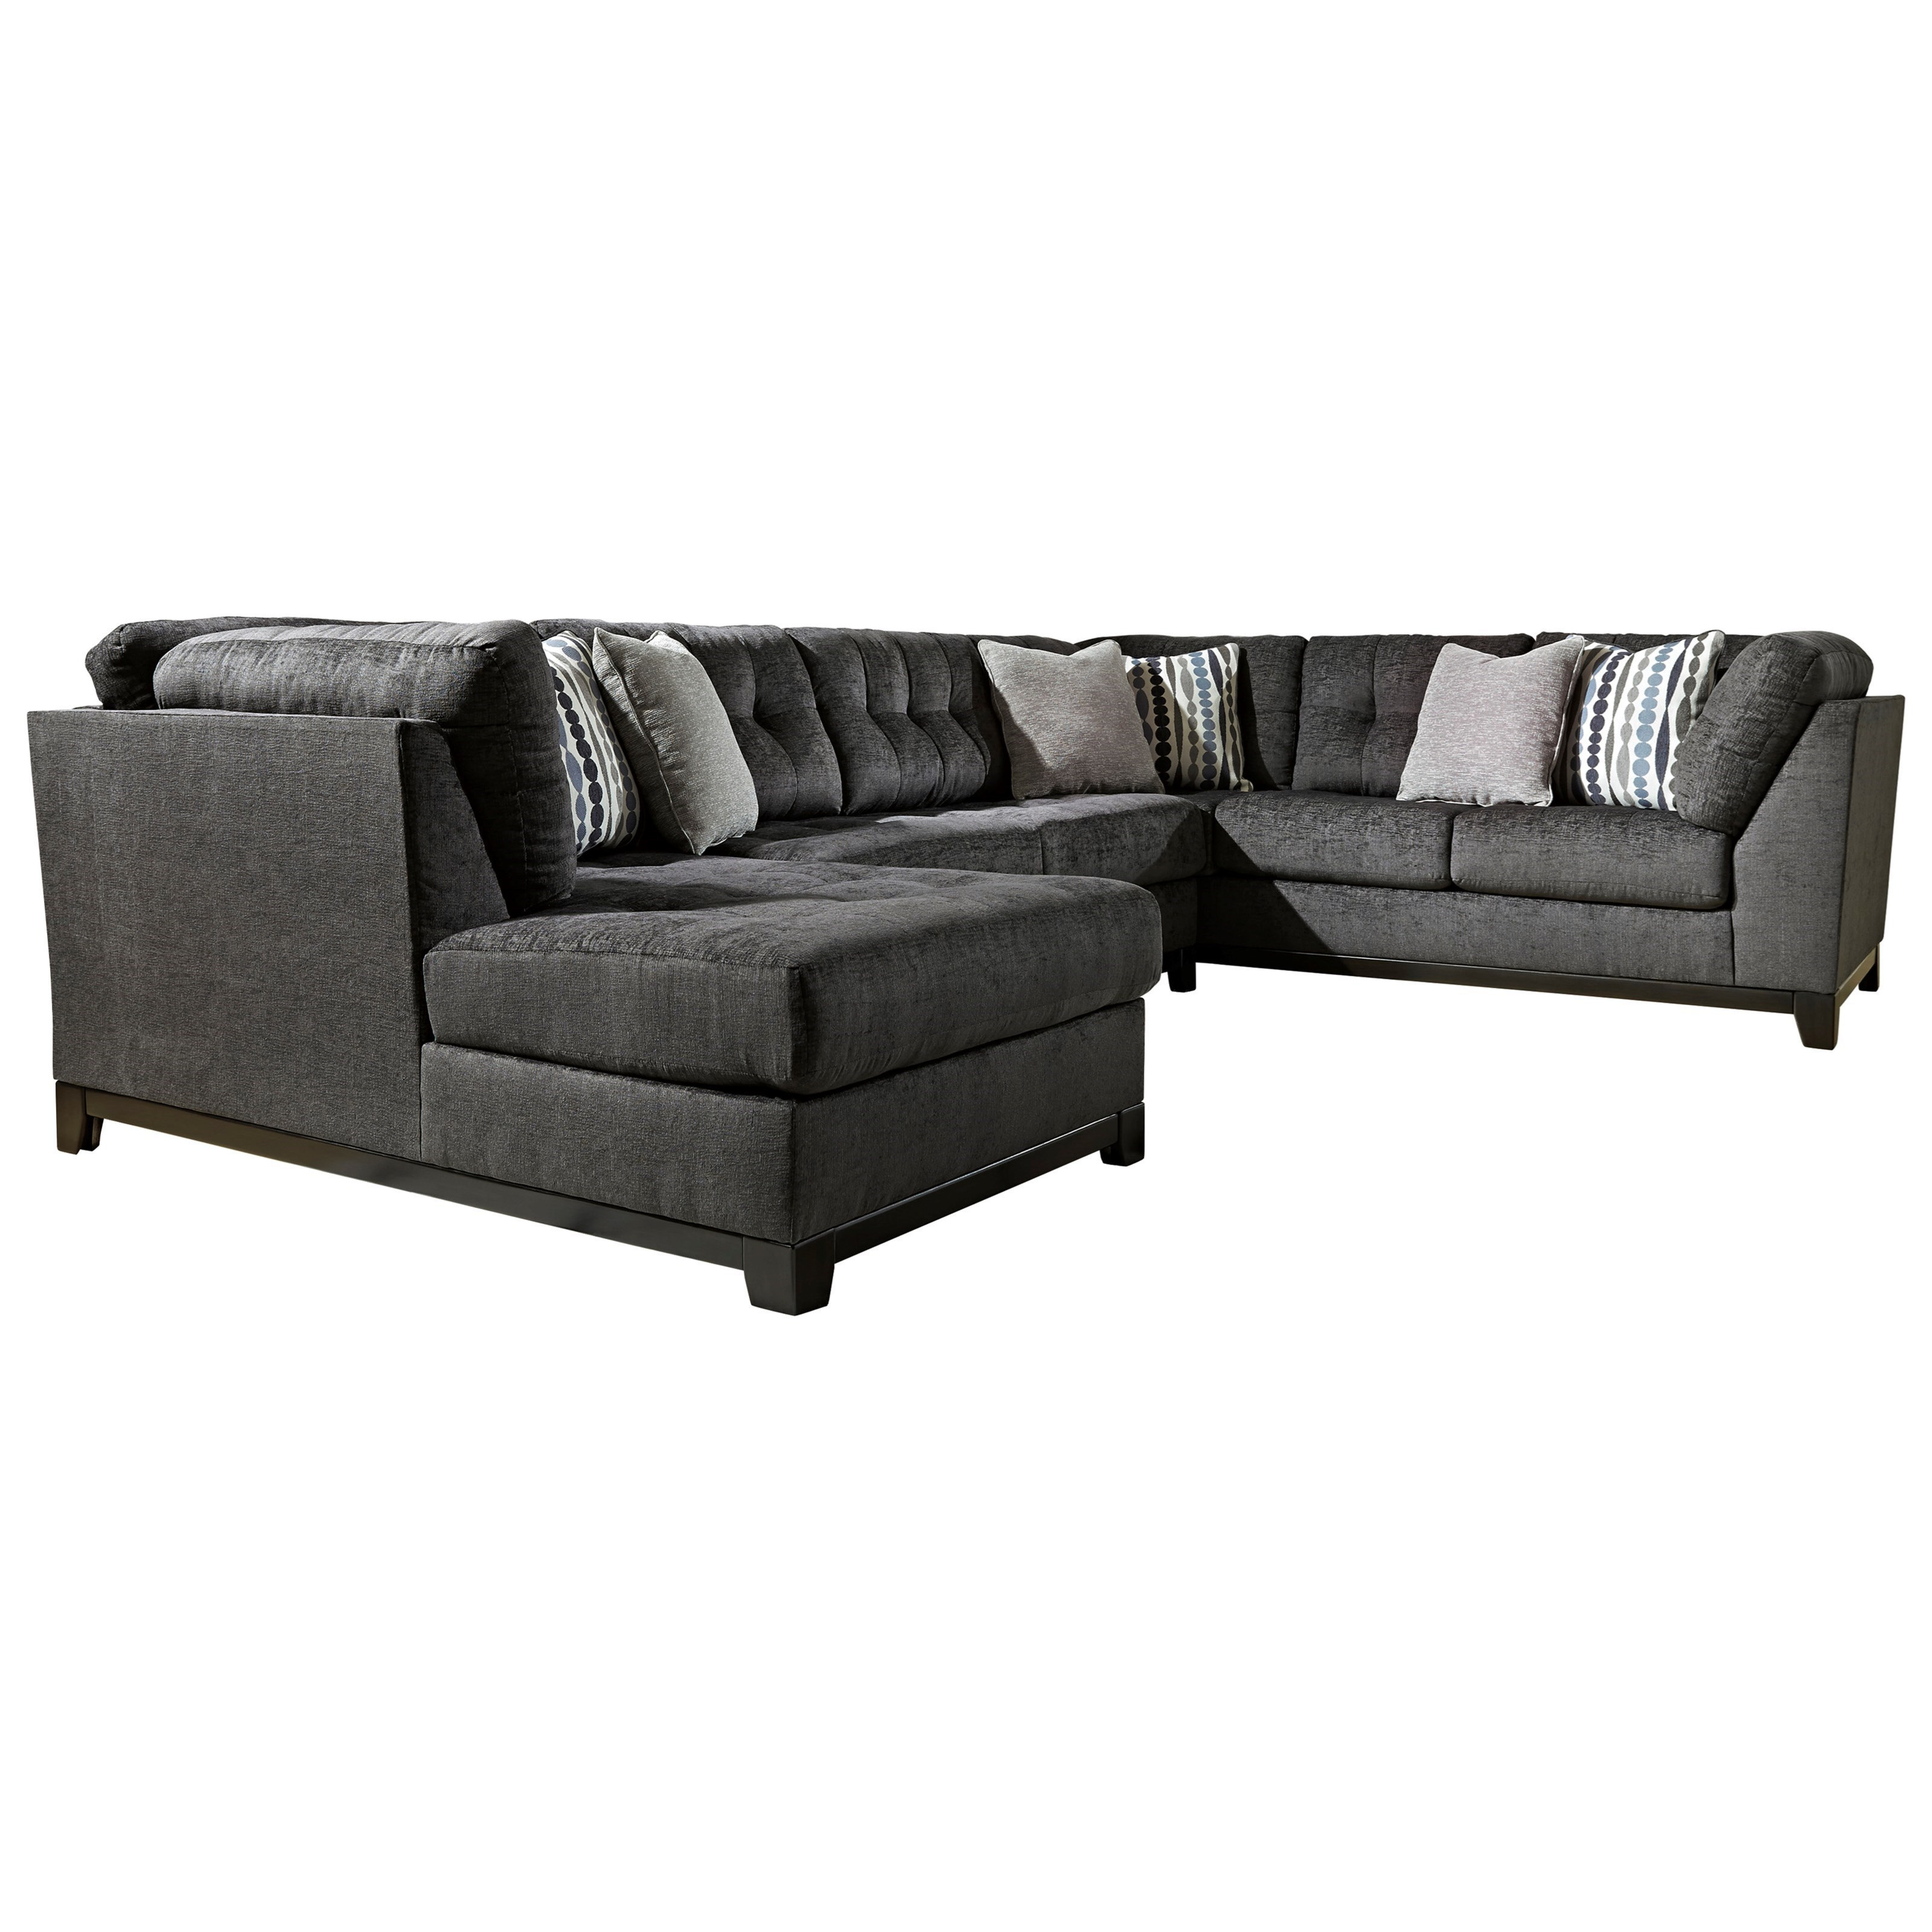 ashley furniture chaise sofa. Ashley Furniture ReidshireSectional Sofa With Left Side Chaise C